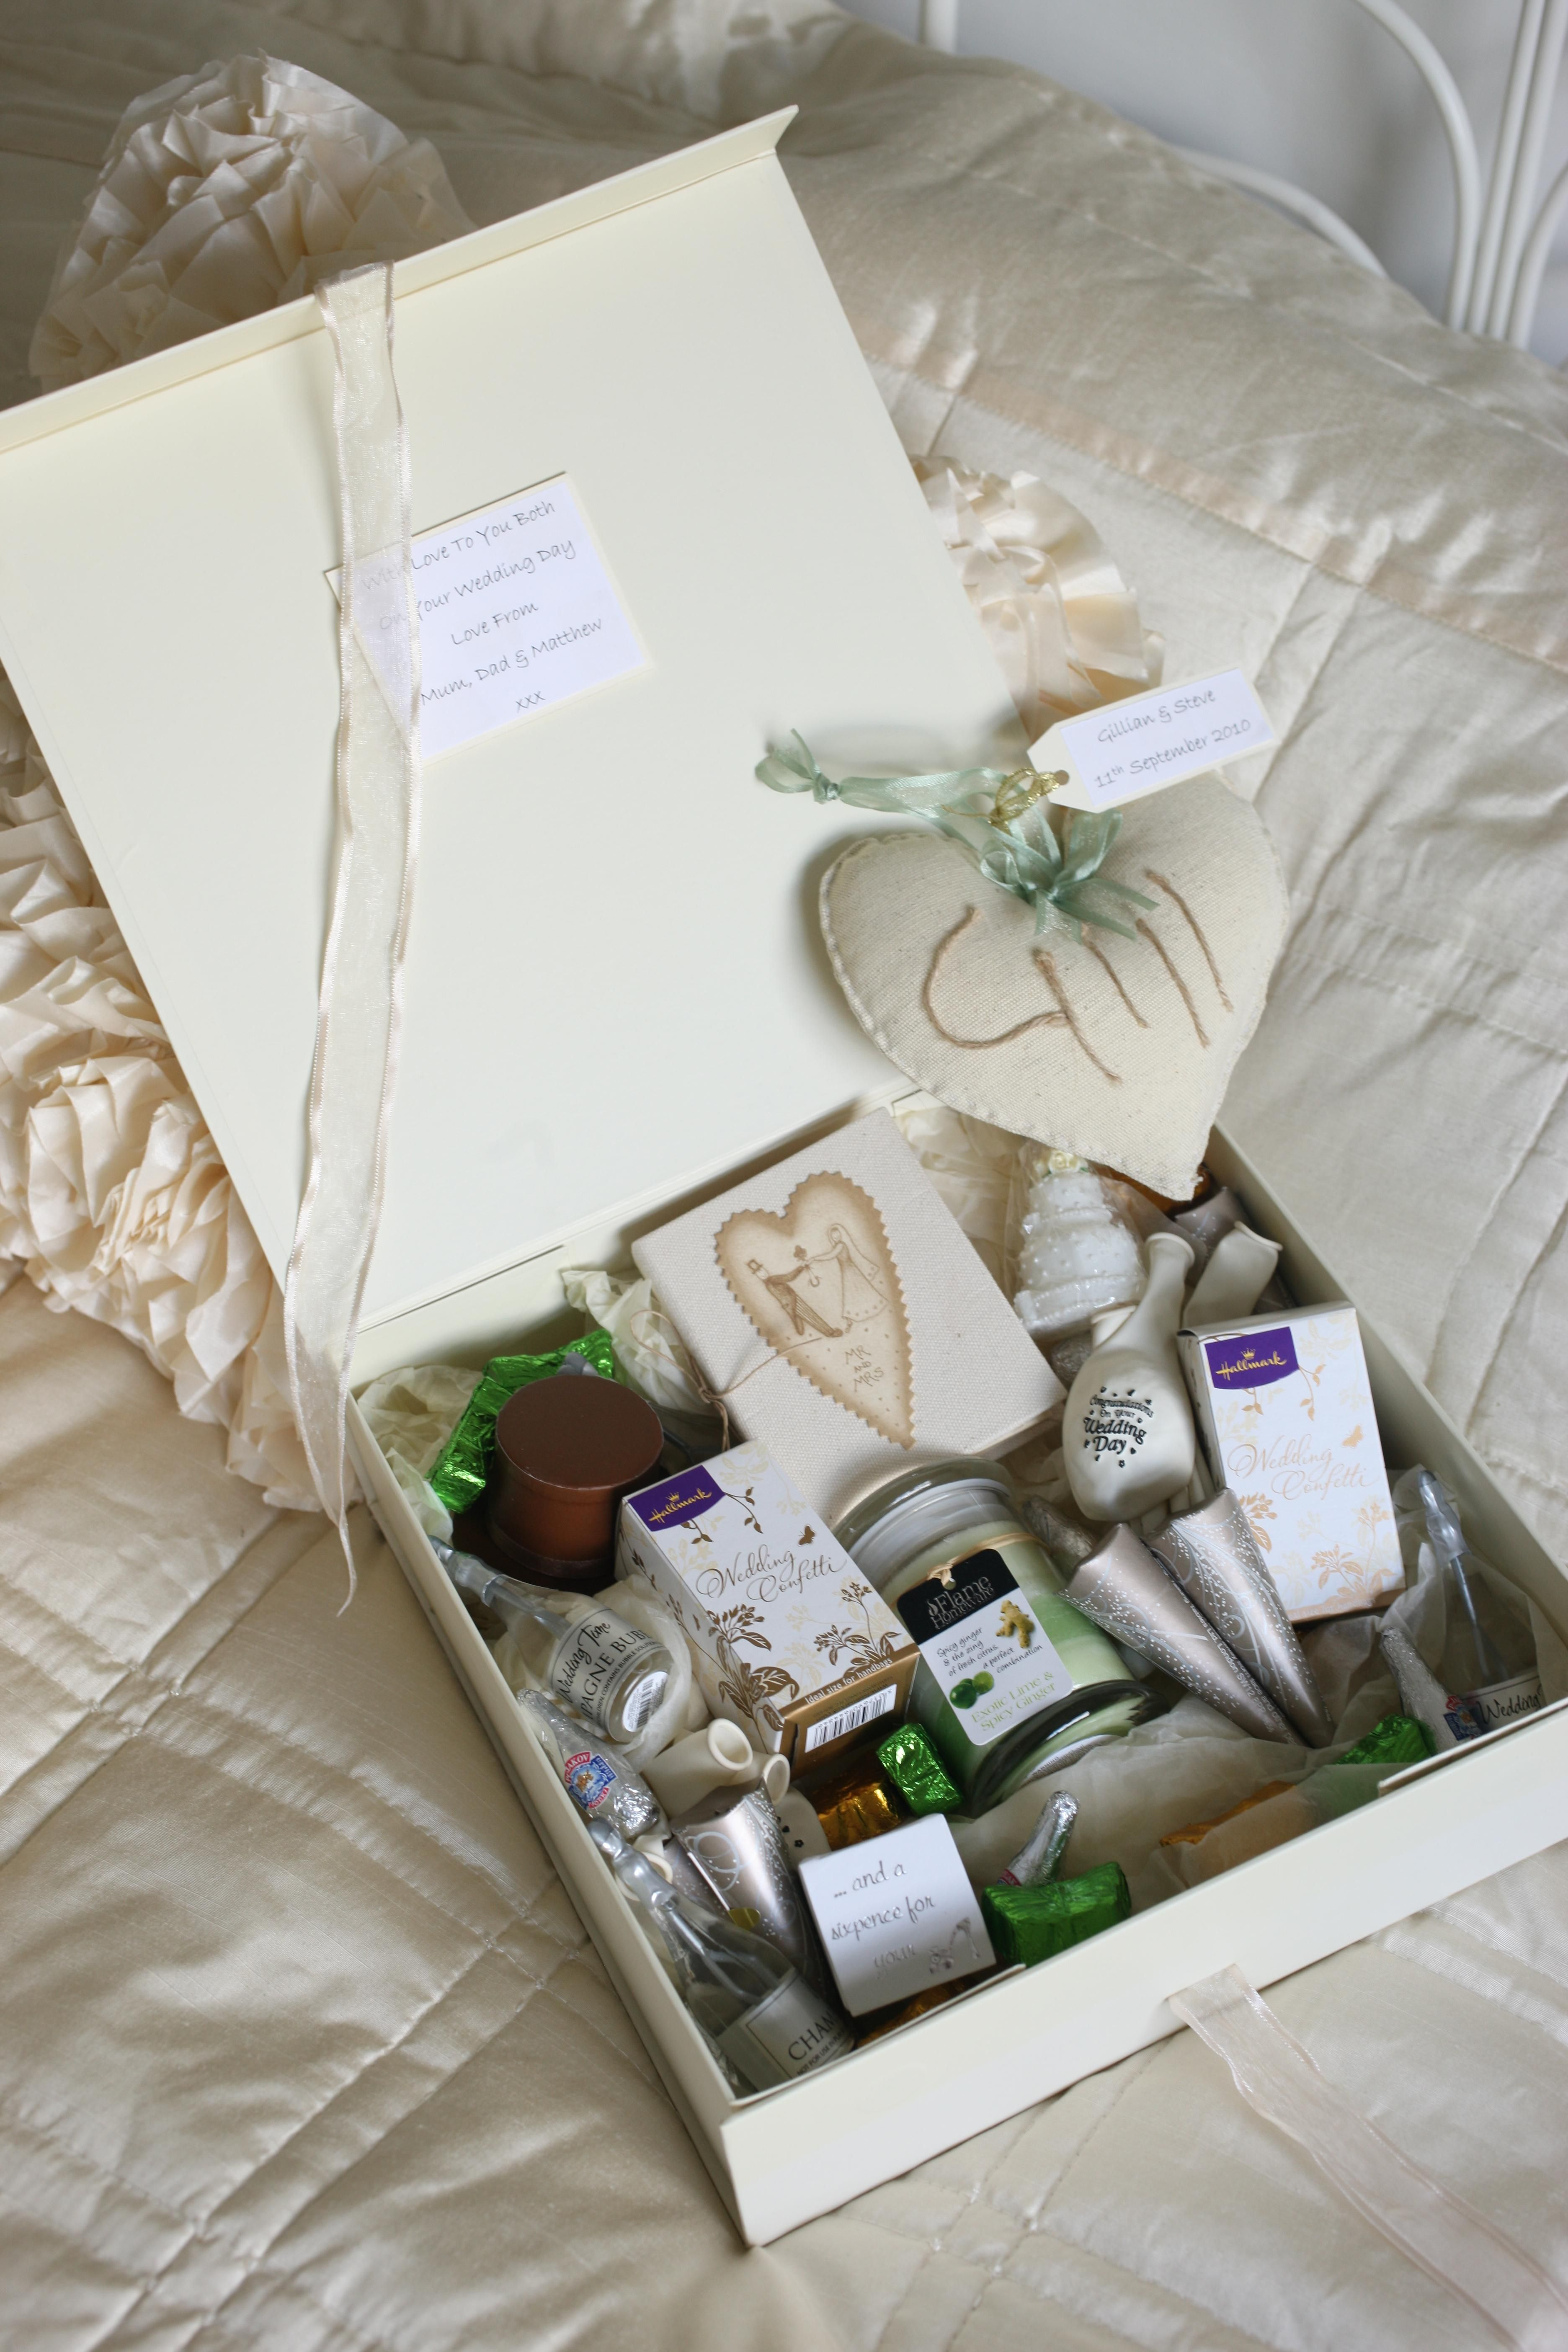 Pre-wedding Gifts, relaxing candles, good luck charms and keepsakes ...